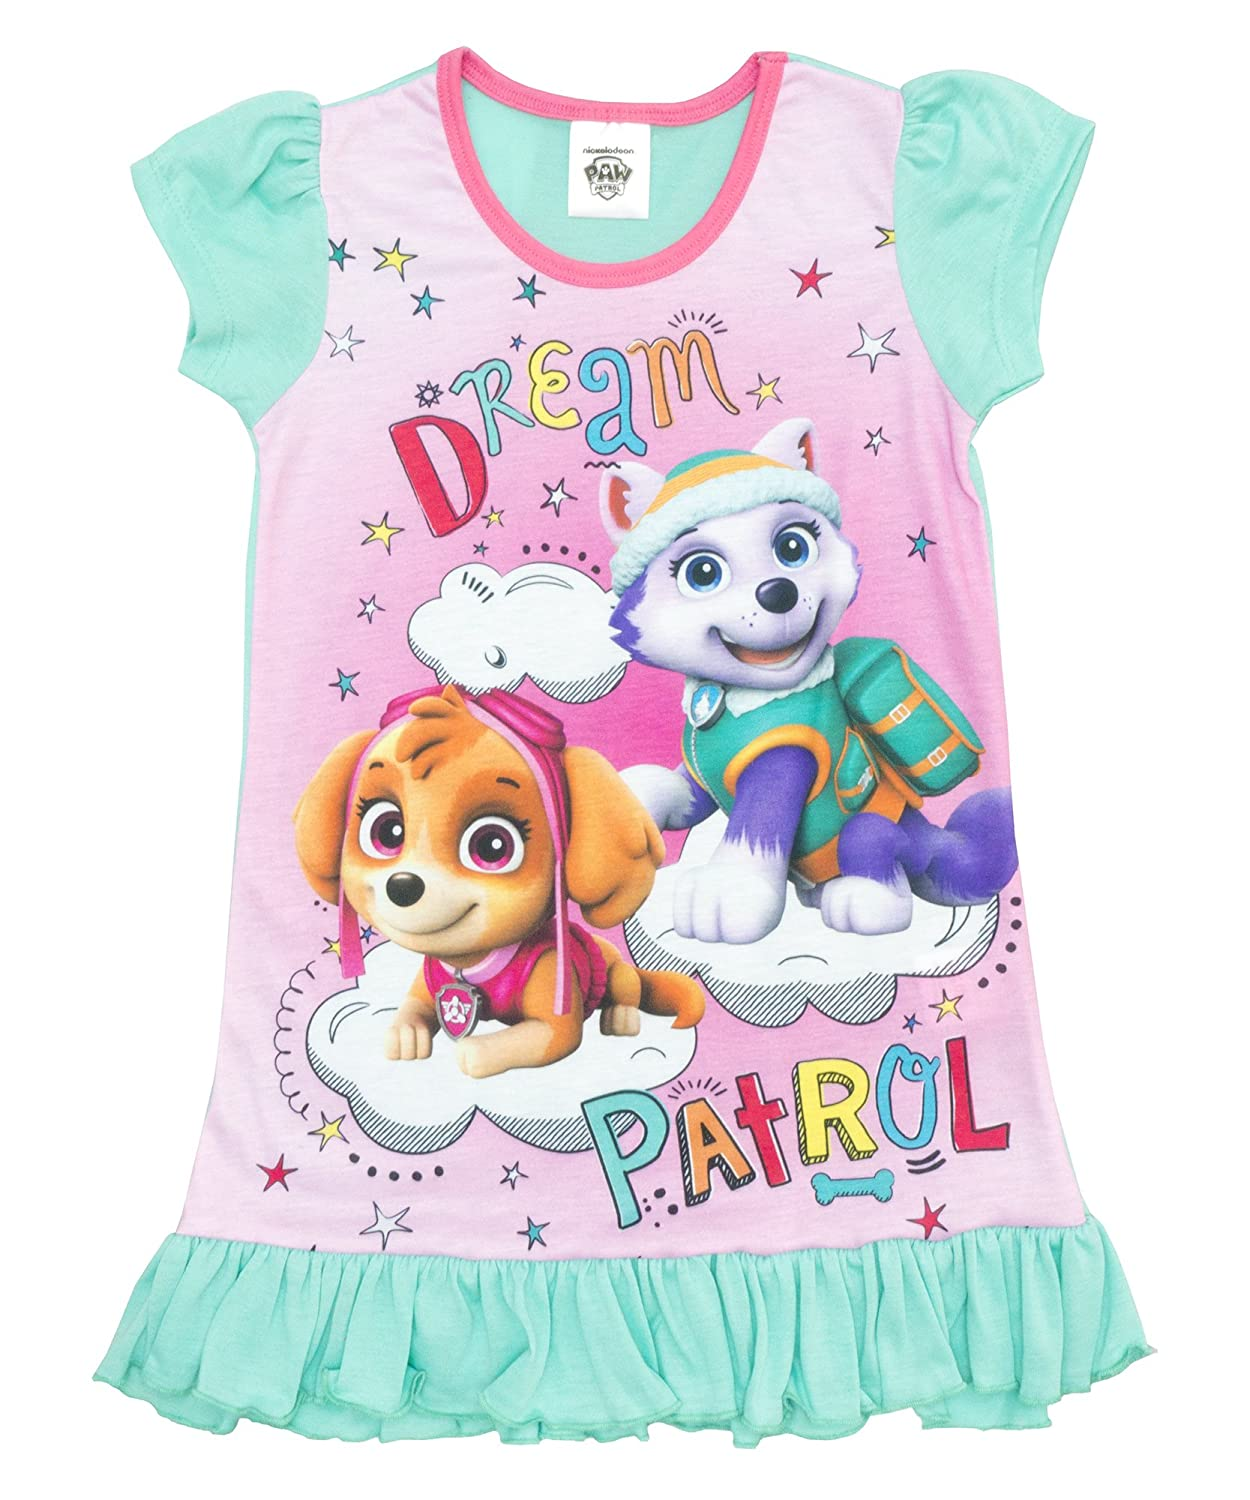 Cartoon Character Products Girls Paw Patrol Nightie - Skye and Everest Nightdress Ages 2 to 6 Years